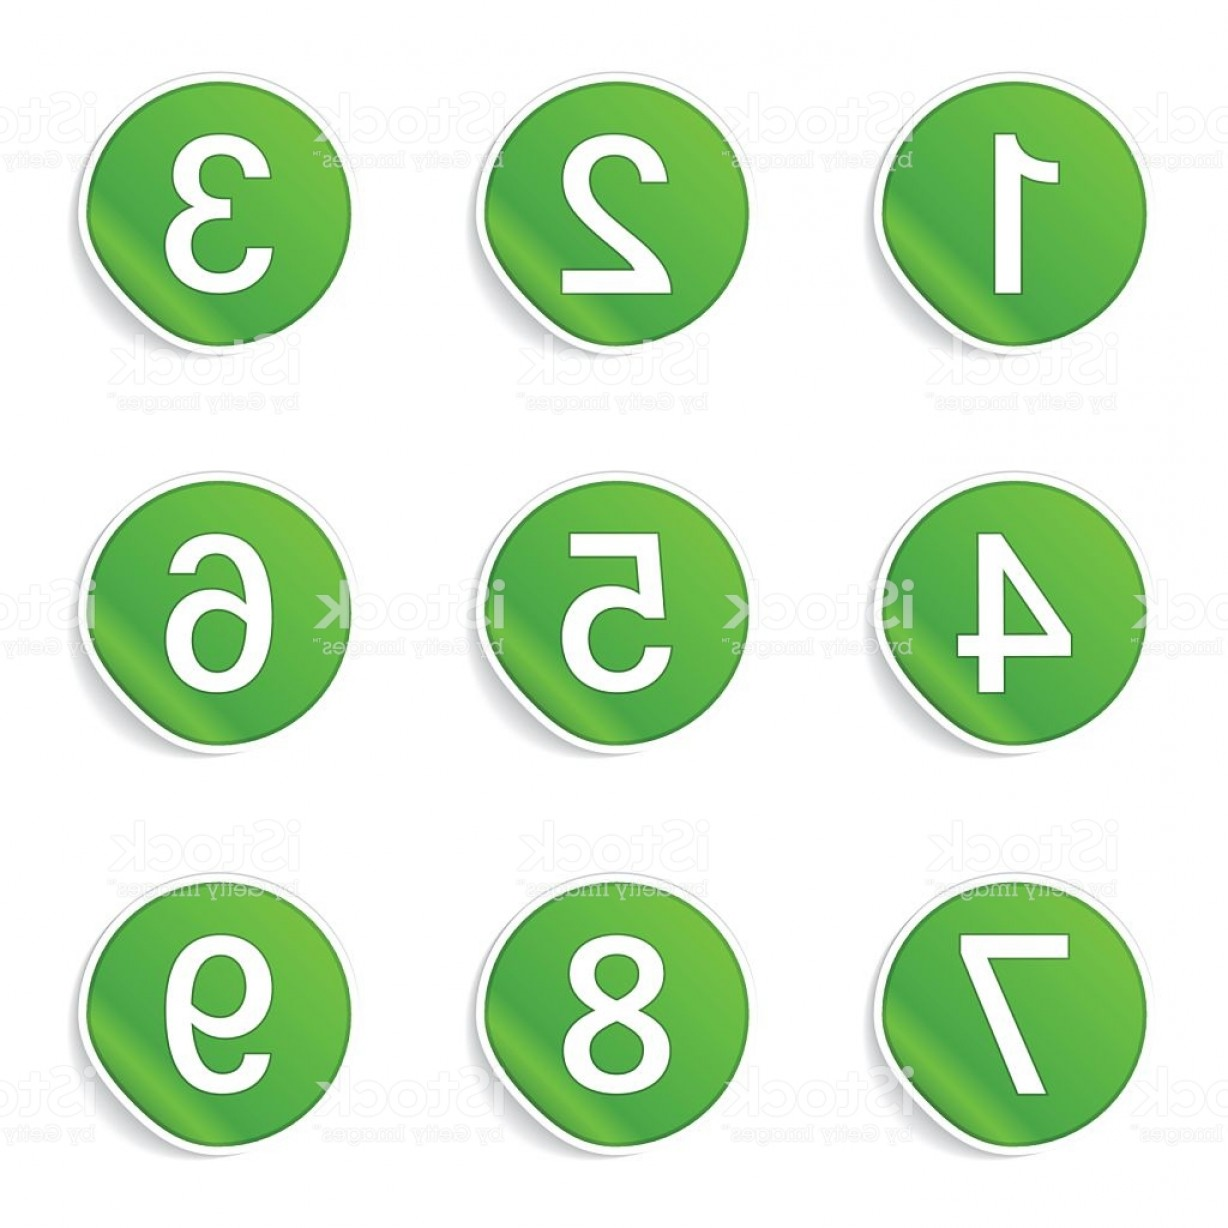 Button Icon Vector: Numbers Counting Green Vector Button Icon Design Set Gm